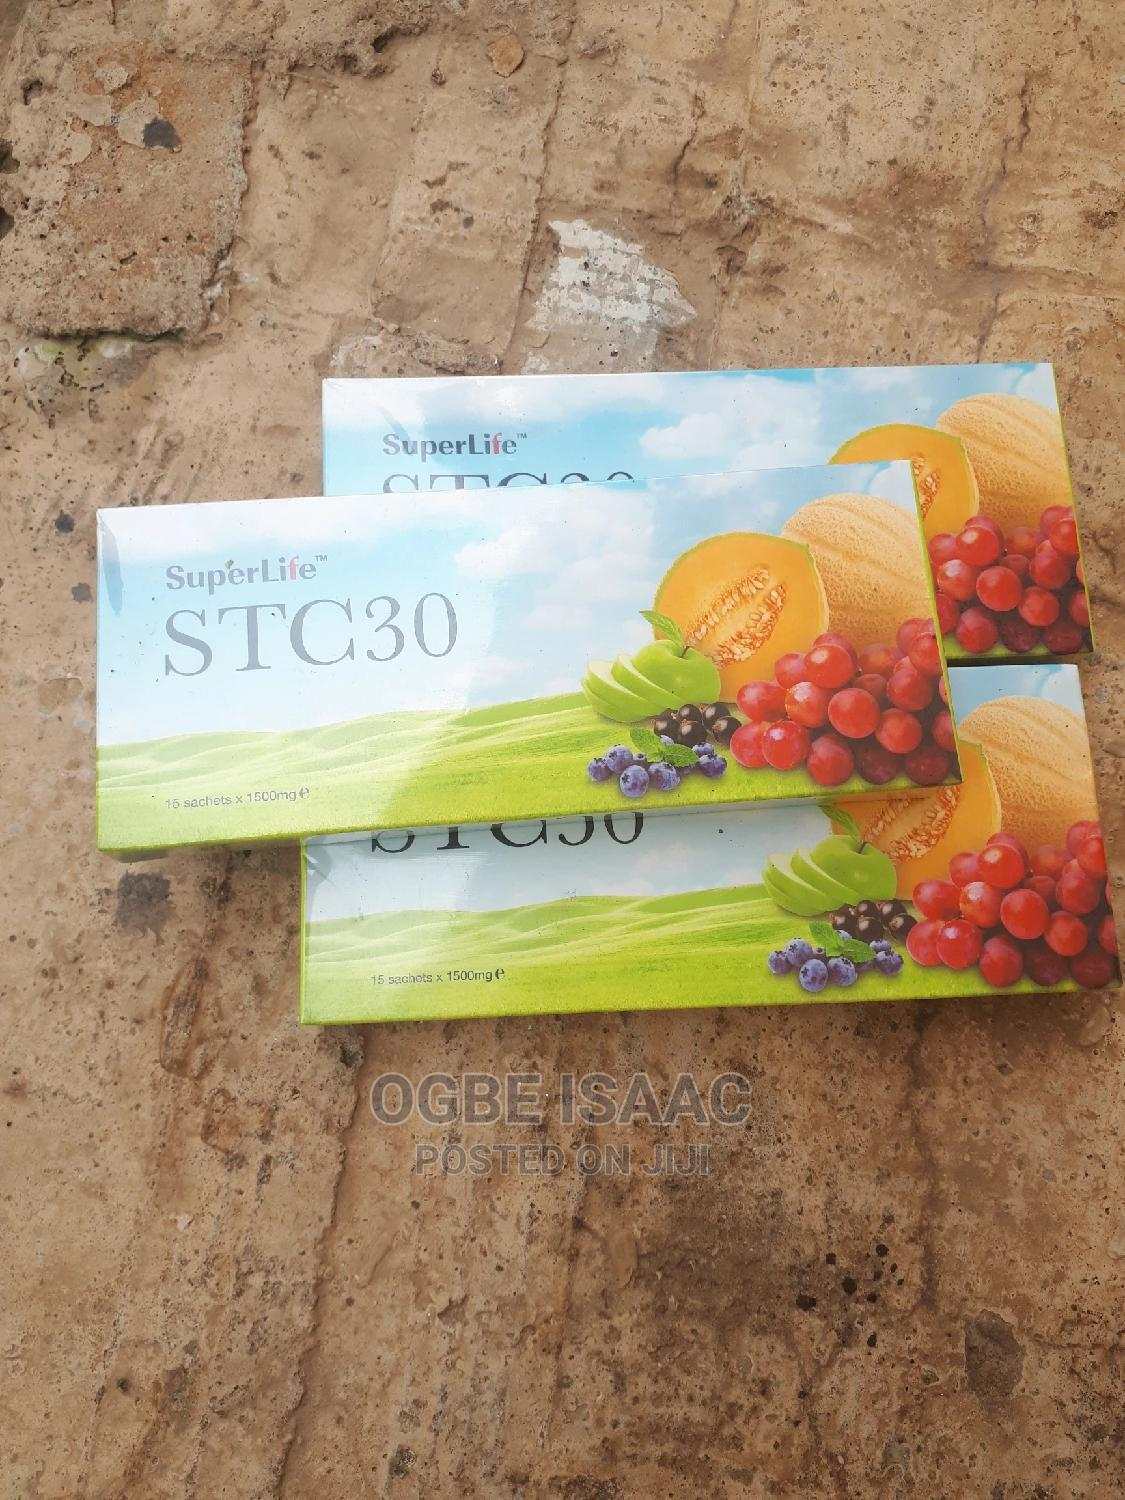 Stc30 Stem Cell Therapy